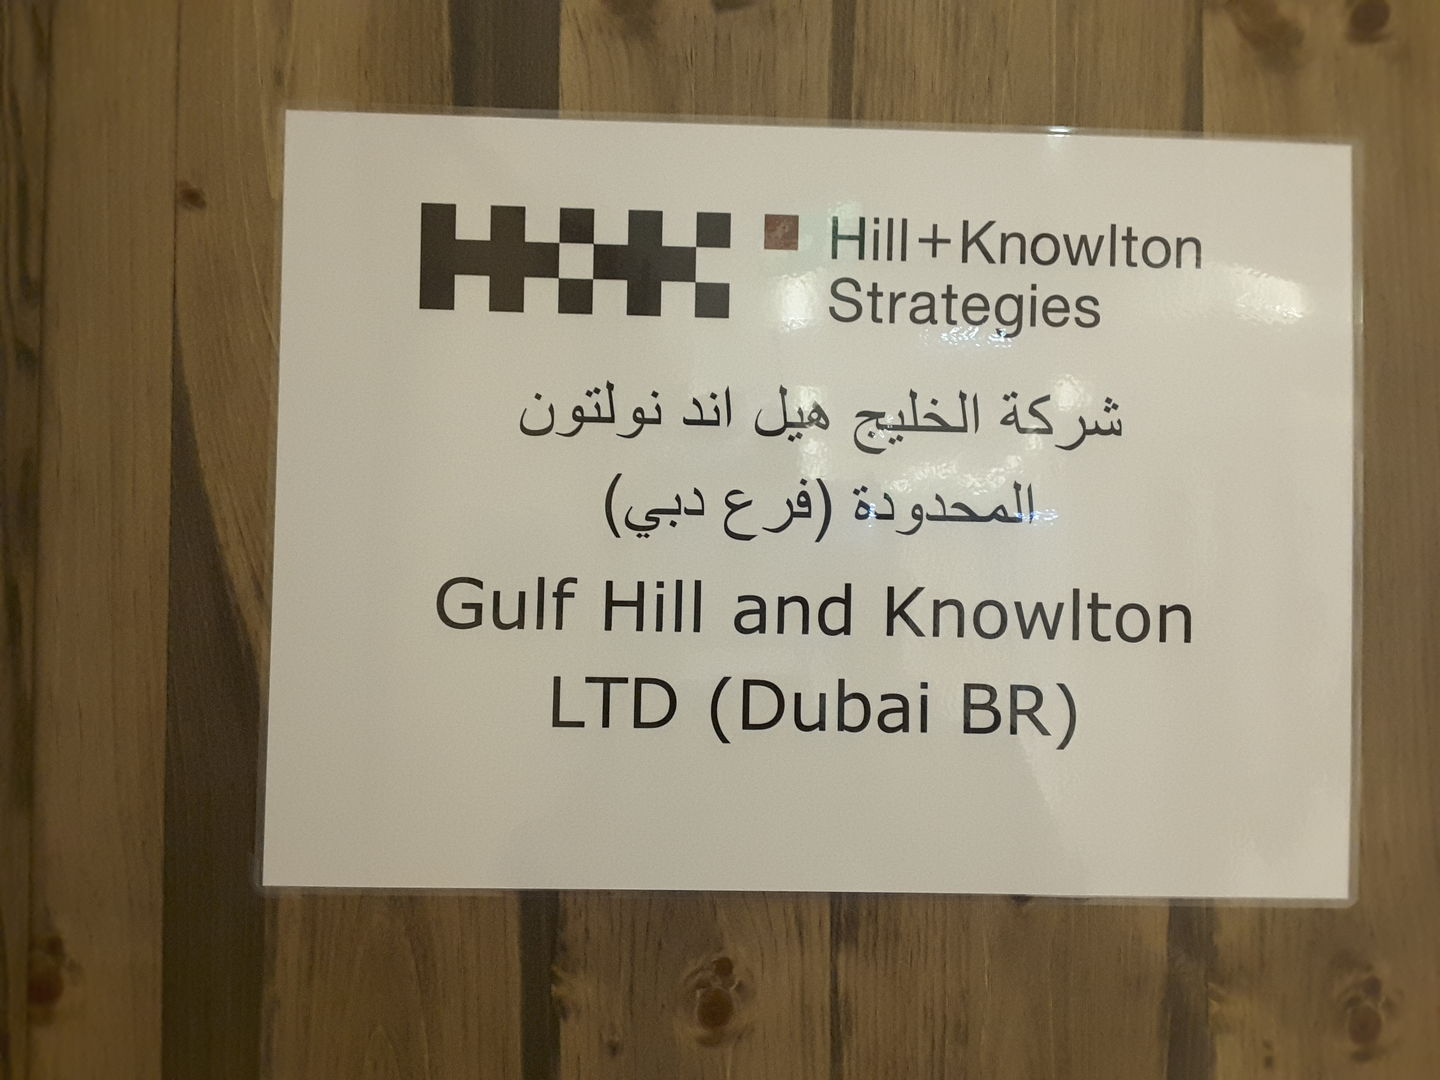 HiDubai-business-gulf-hill-and-knowlton-ltd-media-marketing-it-pr-marketing-dubai-media-city-al-sufouh-2-dubai-2